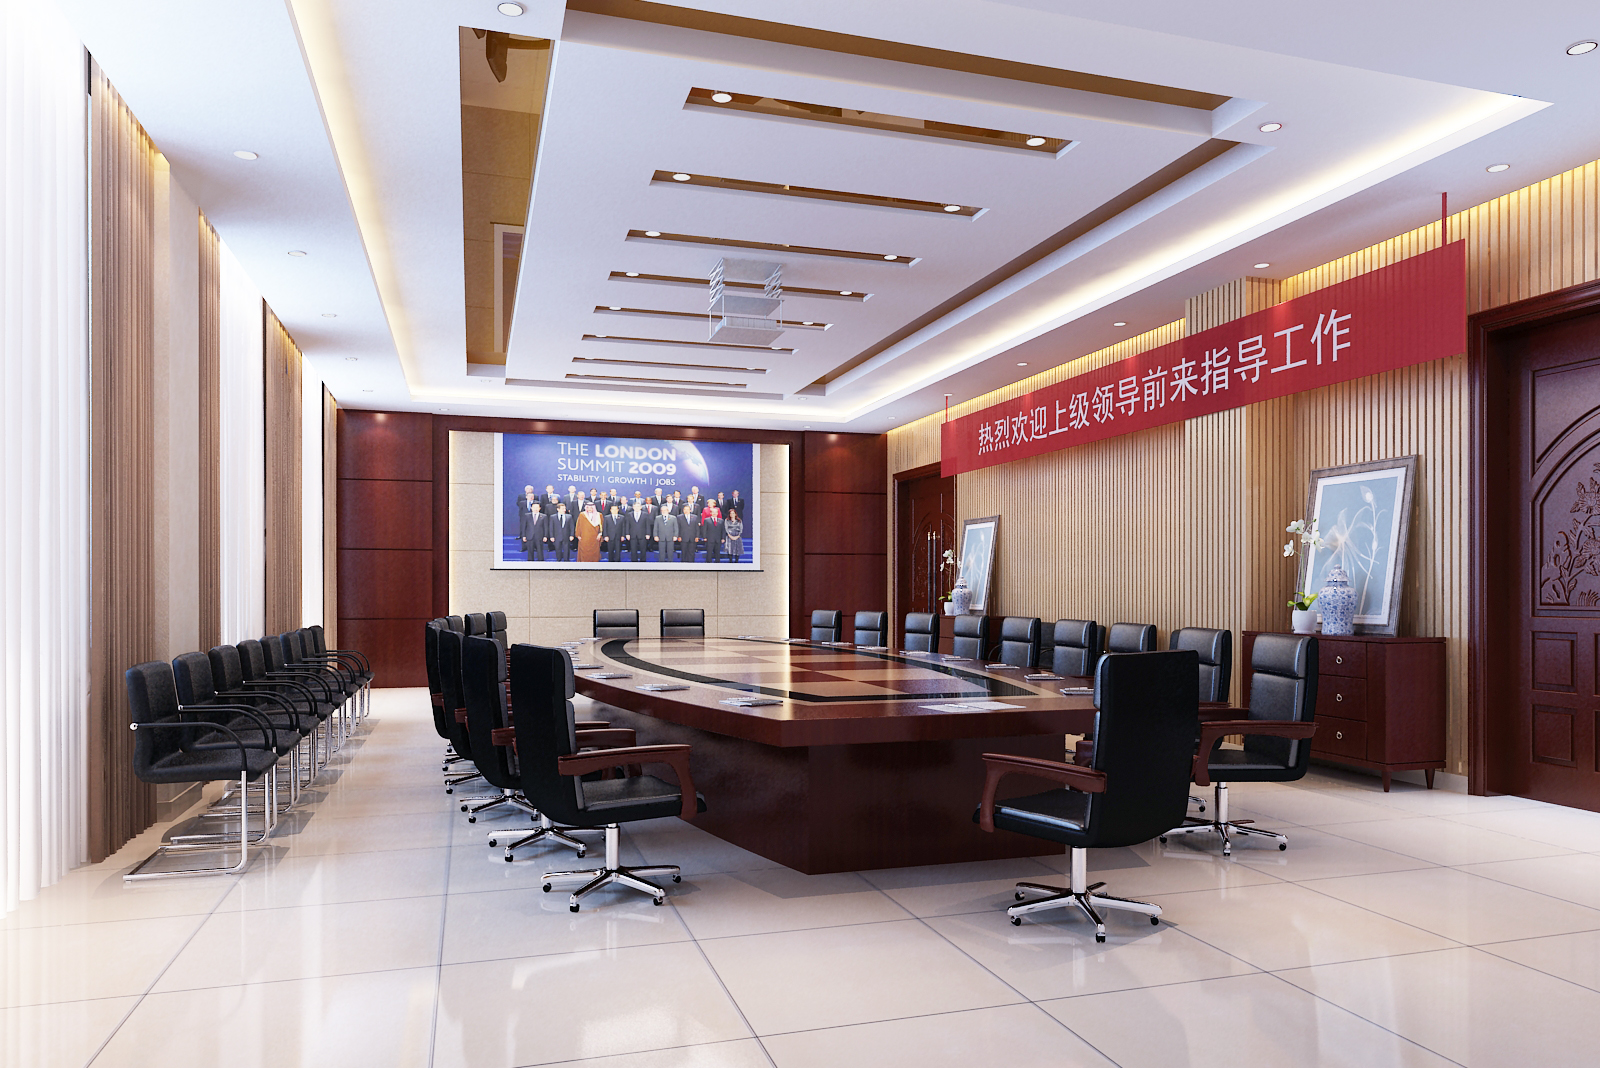 Office meeting room 3d model max for 3d office room design